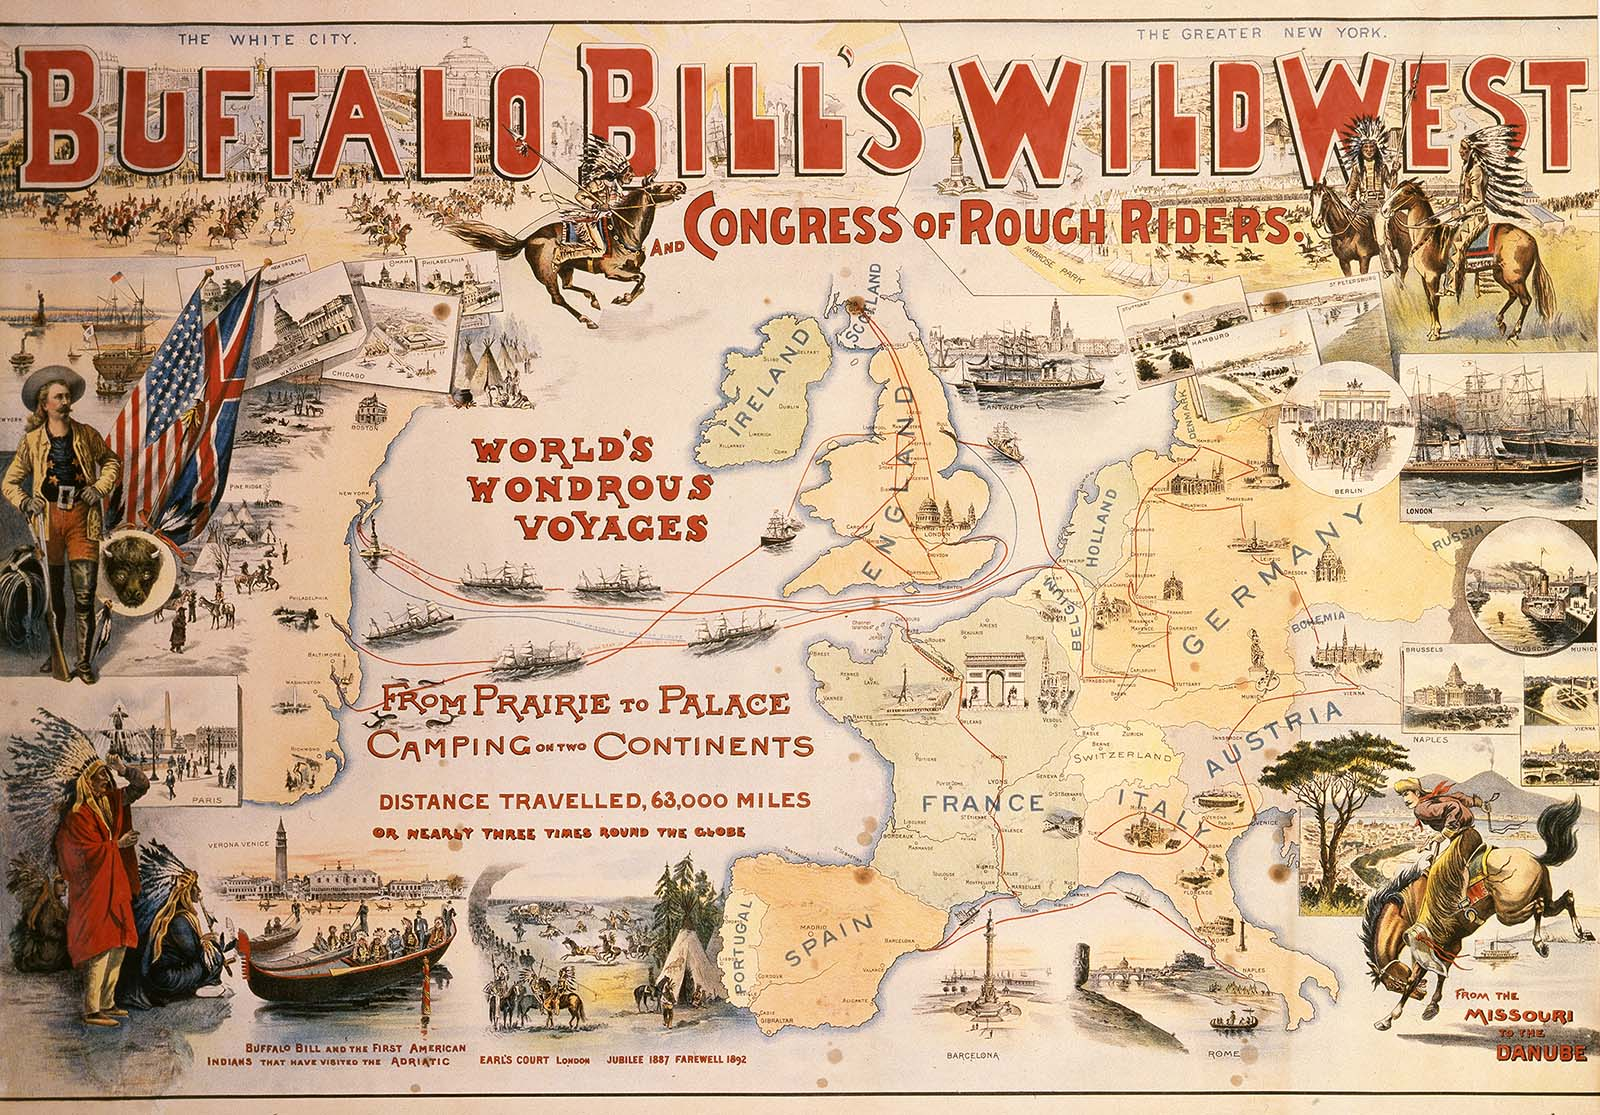 """Buffalo Bill's Wild West was one of the """"hottest tickets"""" in America and Europe, as this 1894 lithograph poster reveals. After its 1891-1892 visit to Glasgow, the Wild West returned to eager audiences in 1904. Gift of The Coe Foundation. 1.69.167"""